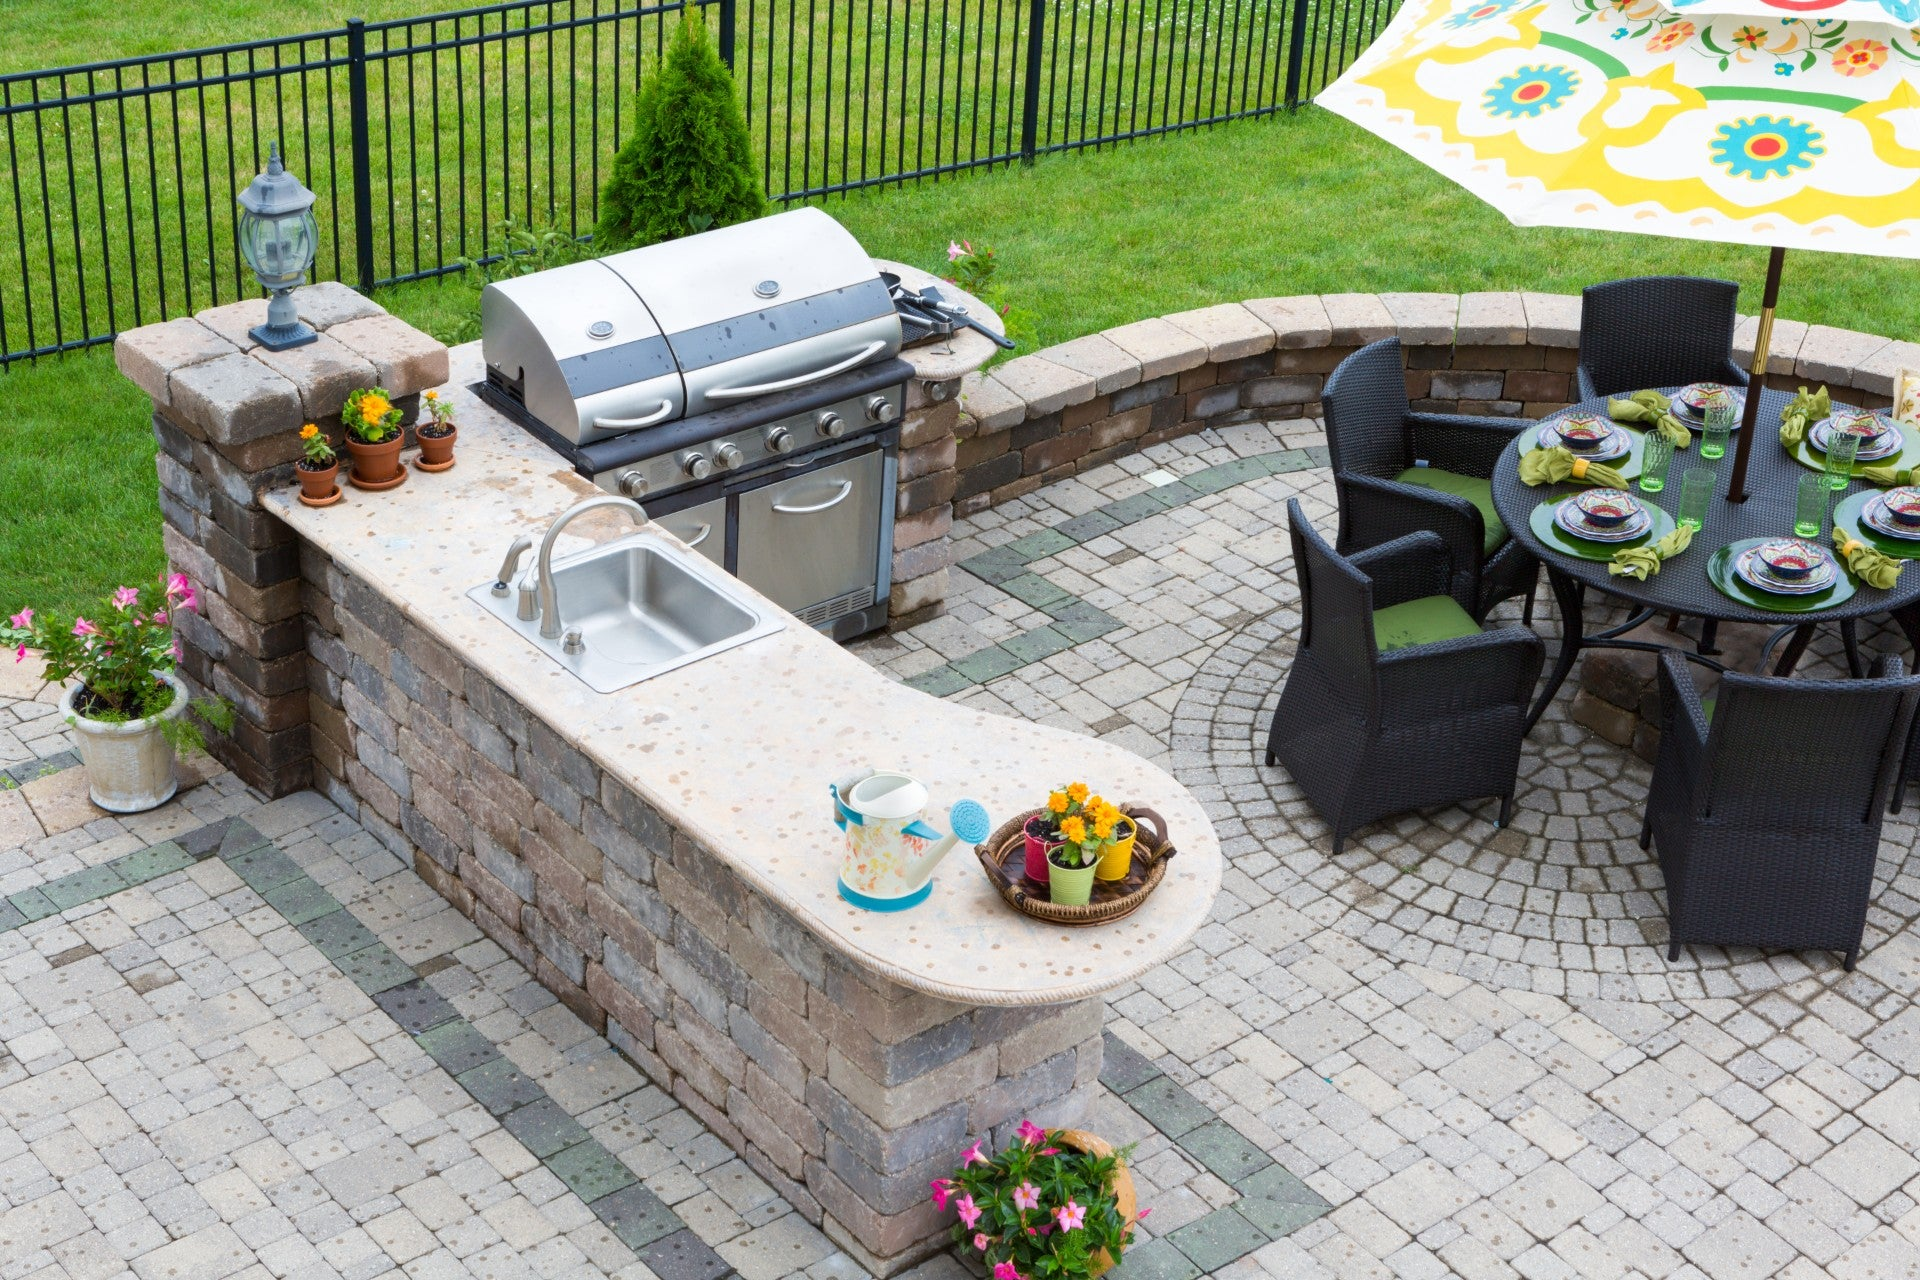 Patio and Outdoor Kitchen with Built In Grill and Seating Area